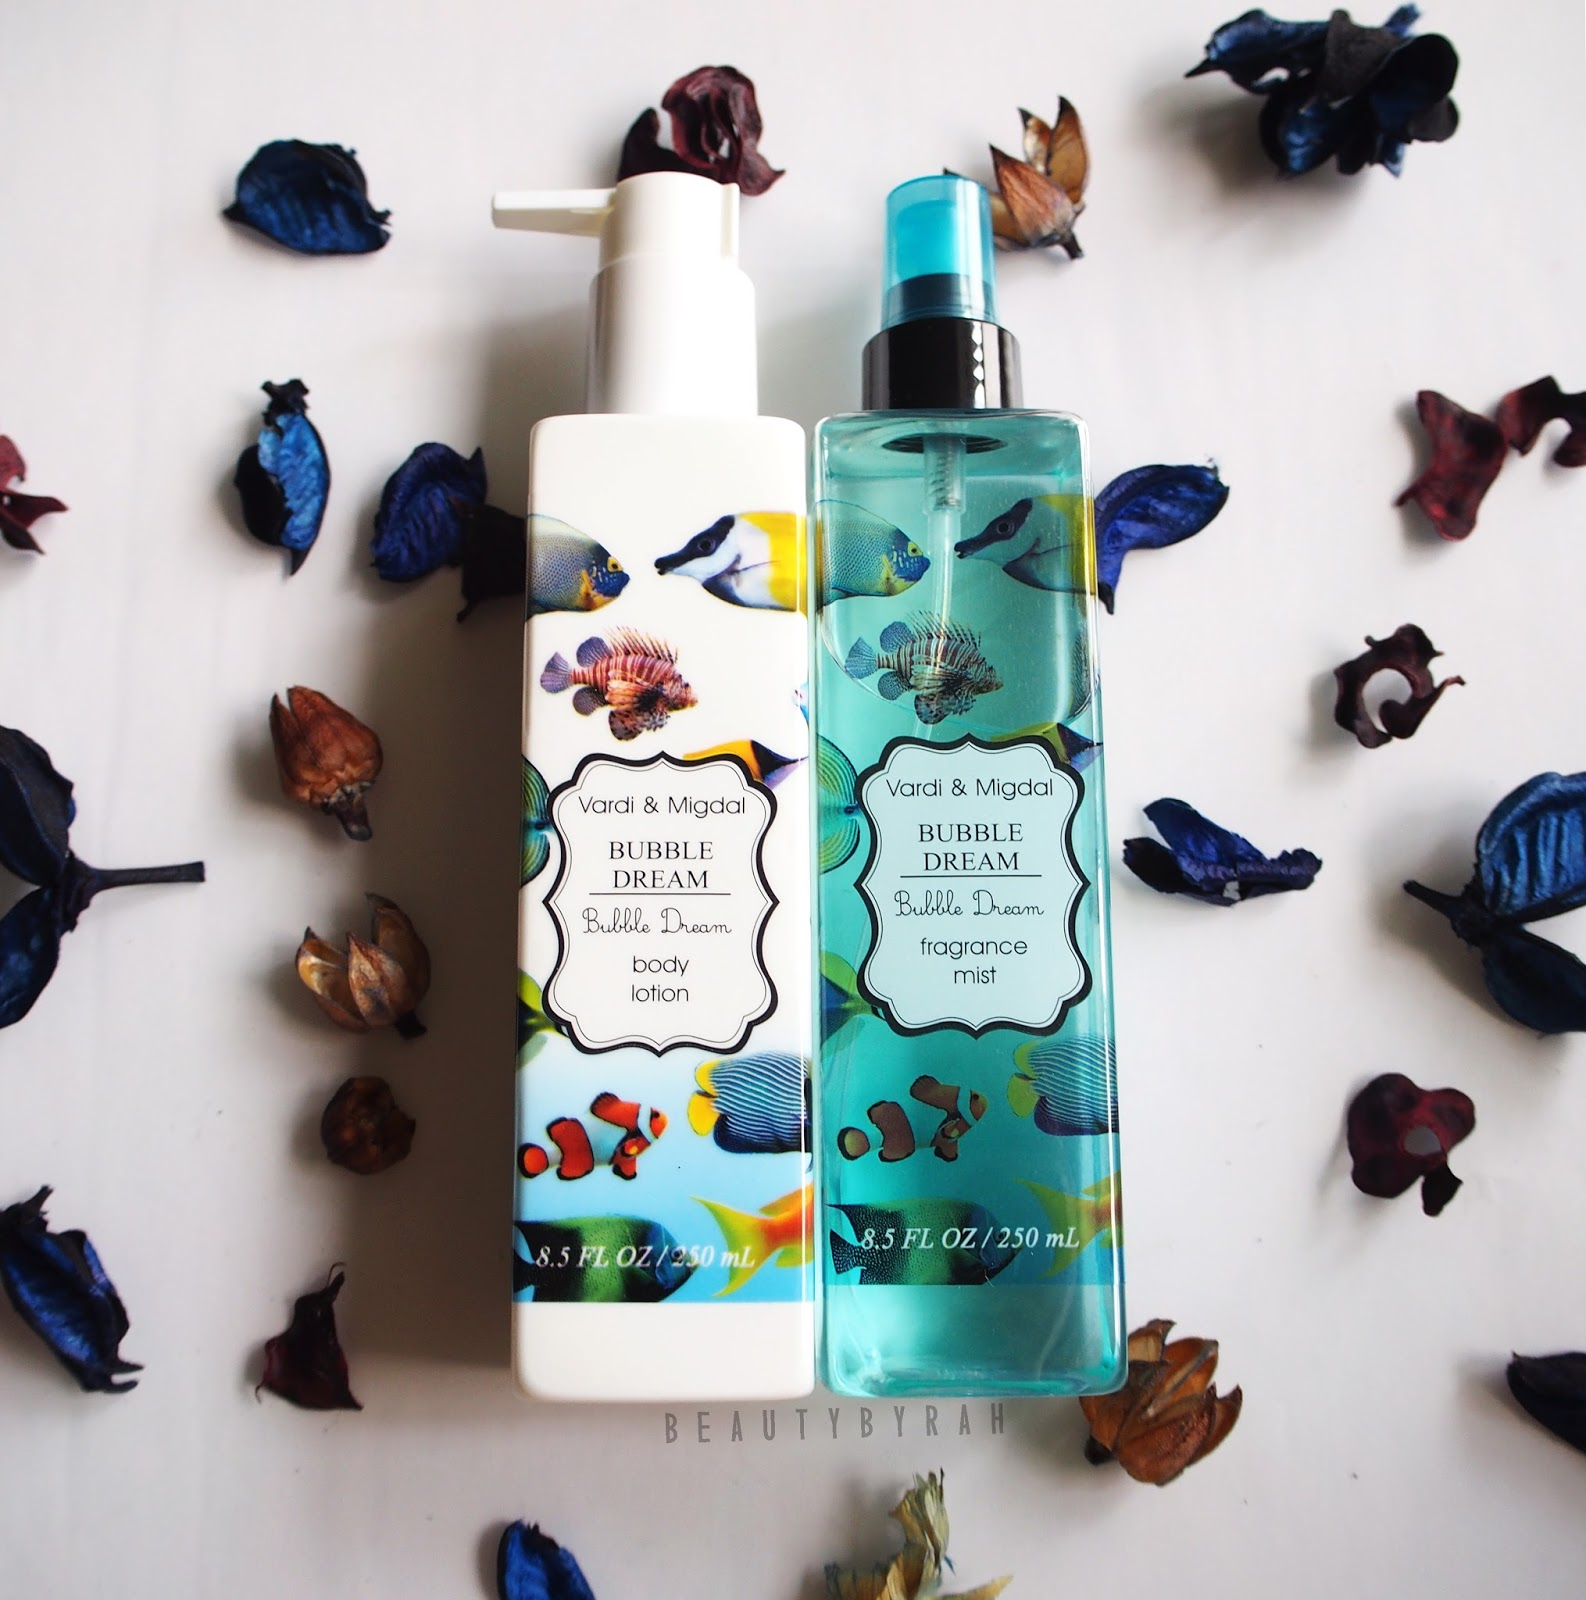 Vardi & Midgal Body Care Bubble Dream Body Lotion and Fragrance Mist Review